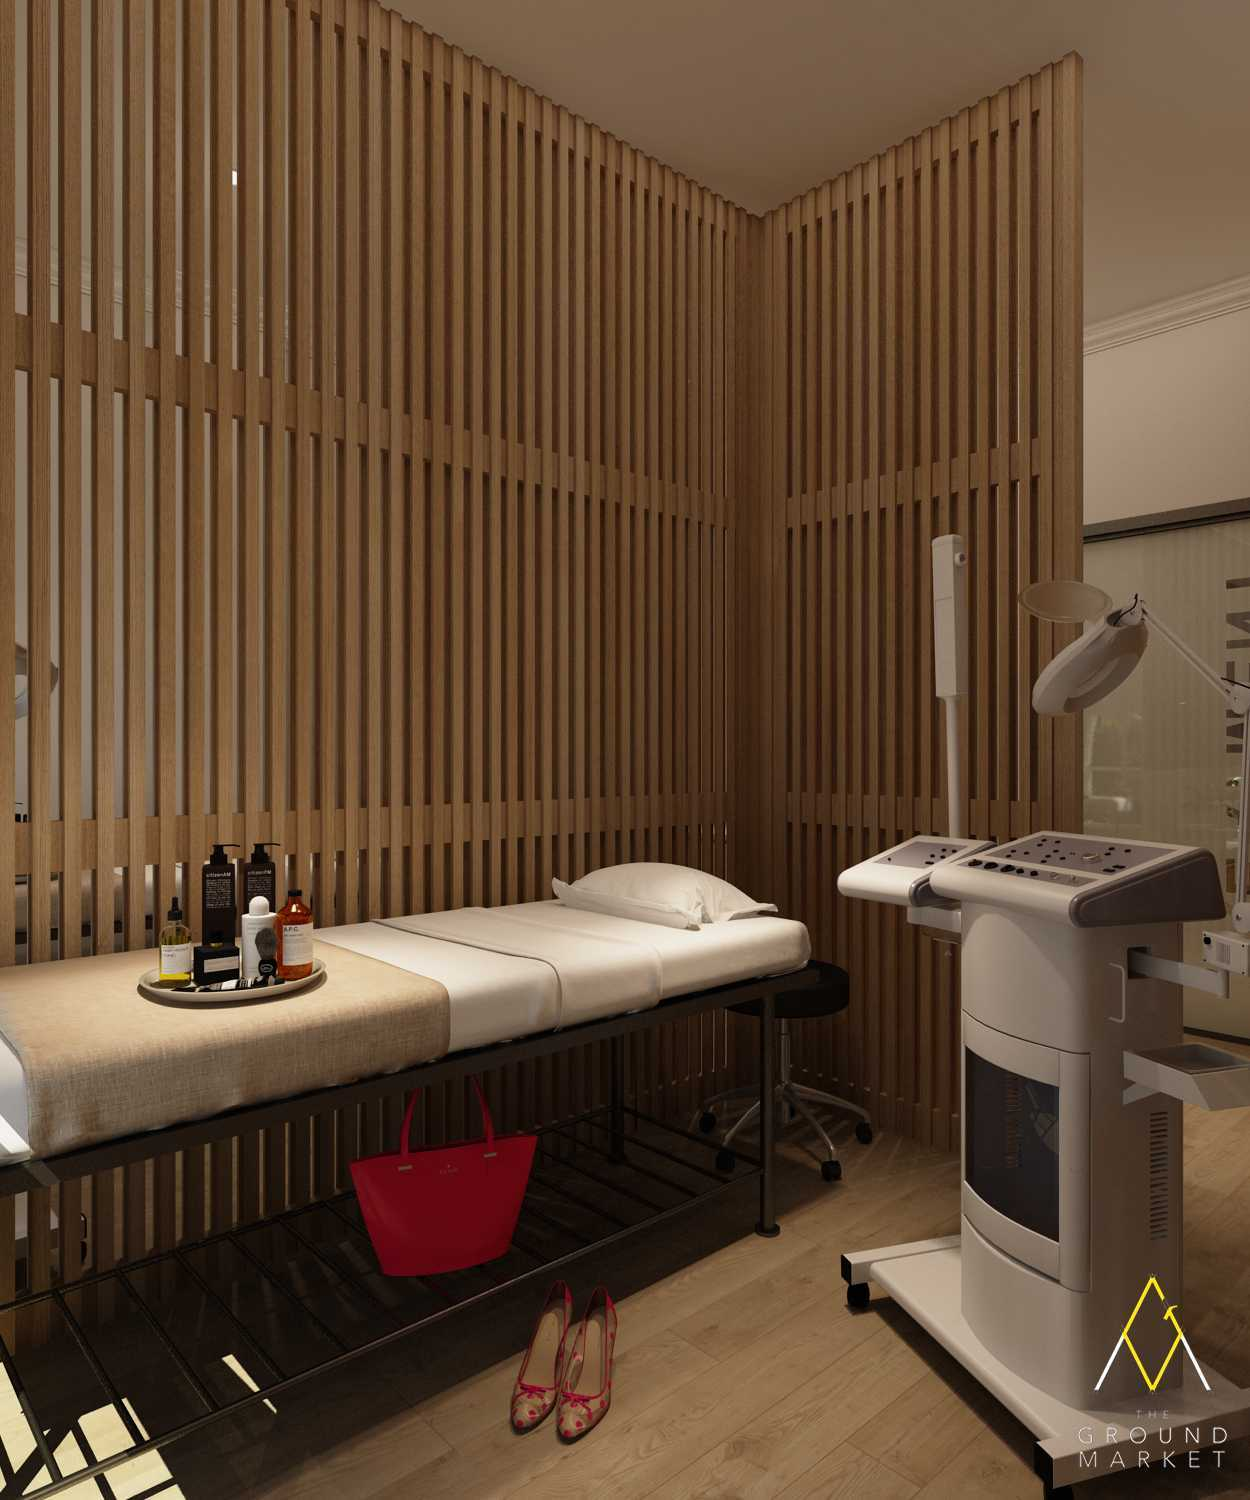 The Ground Market Beauty Center Jakarta Jakarta Treatment Room - Individual Modern 19442